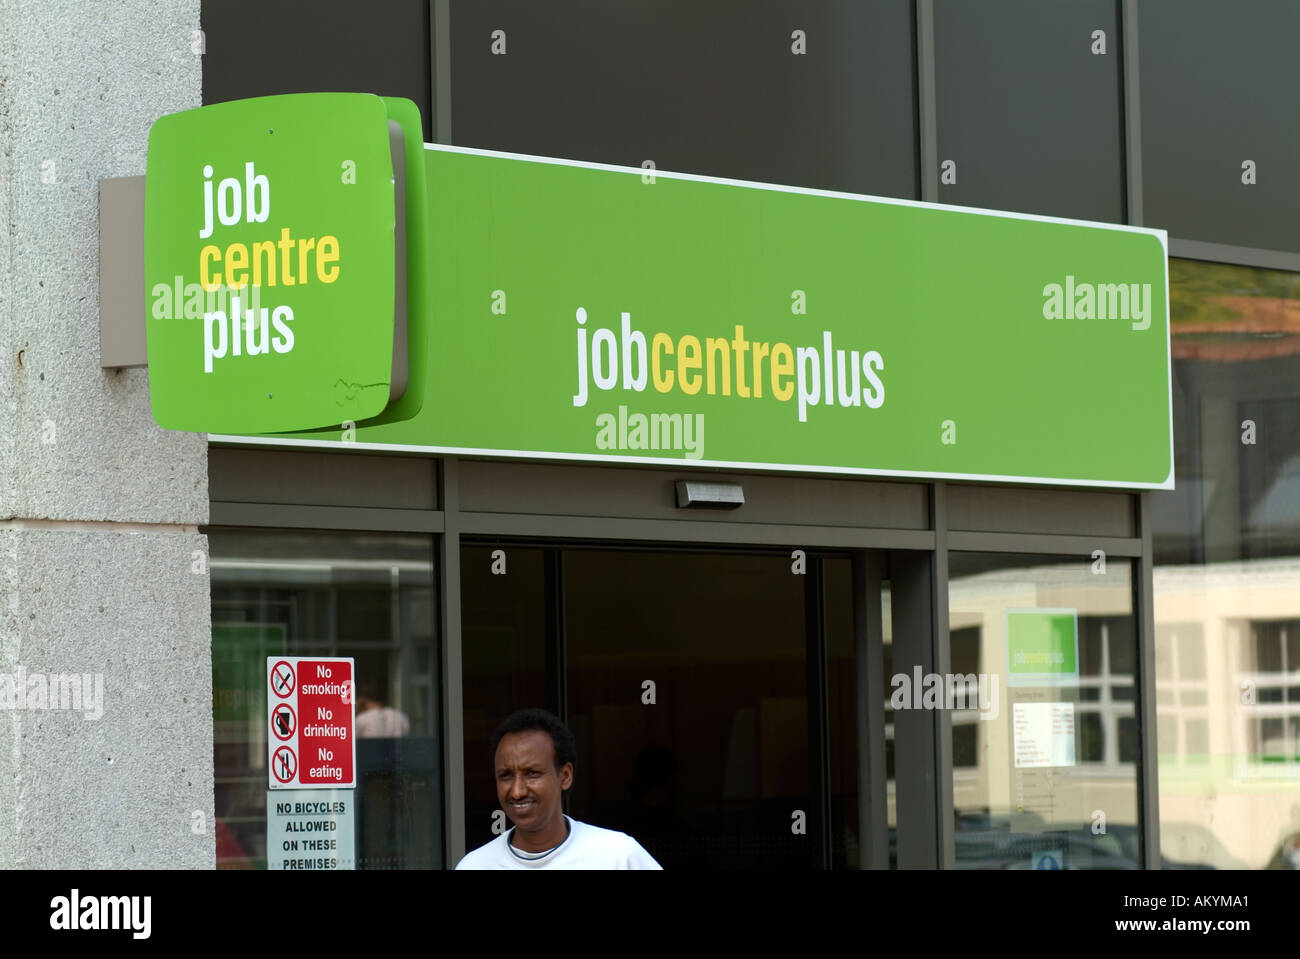 Sales Consultant - Carphone Warehouse Hounslow Fixed Term Contract Part Time hours per week, with flexibility to work additional hours UK £ for under 21's £ for aged 21 or over Plus an additional £ per hour location allowance Technology is transforming the world in extraordinary ways.